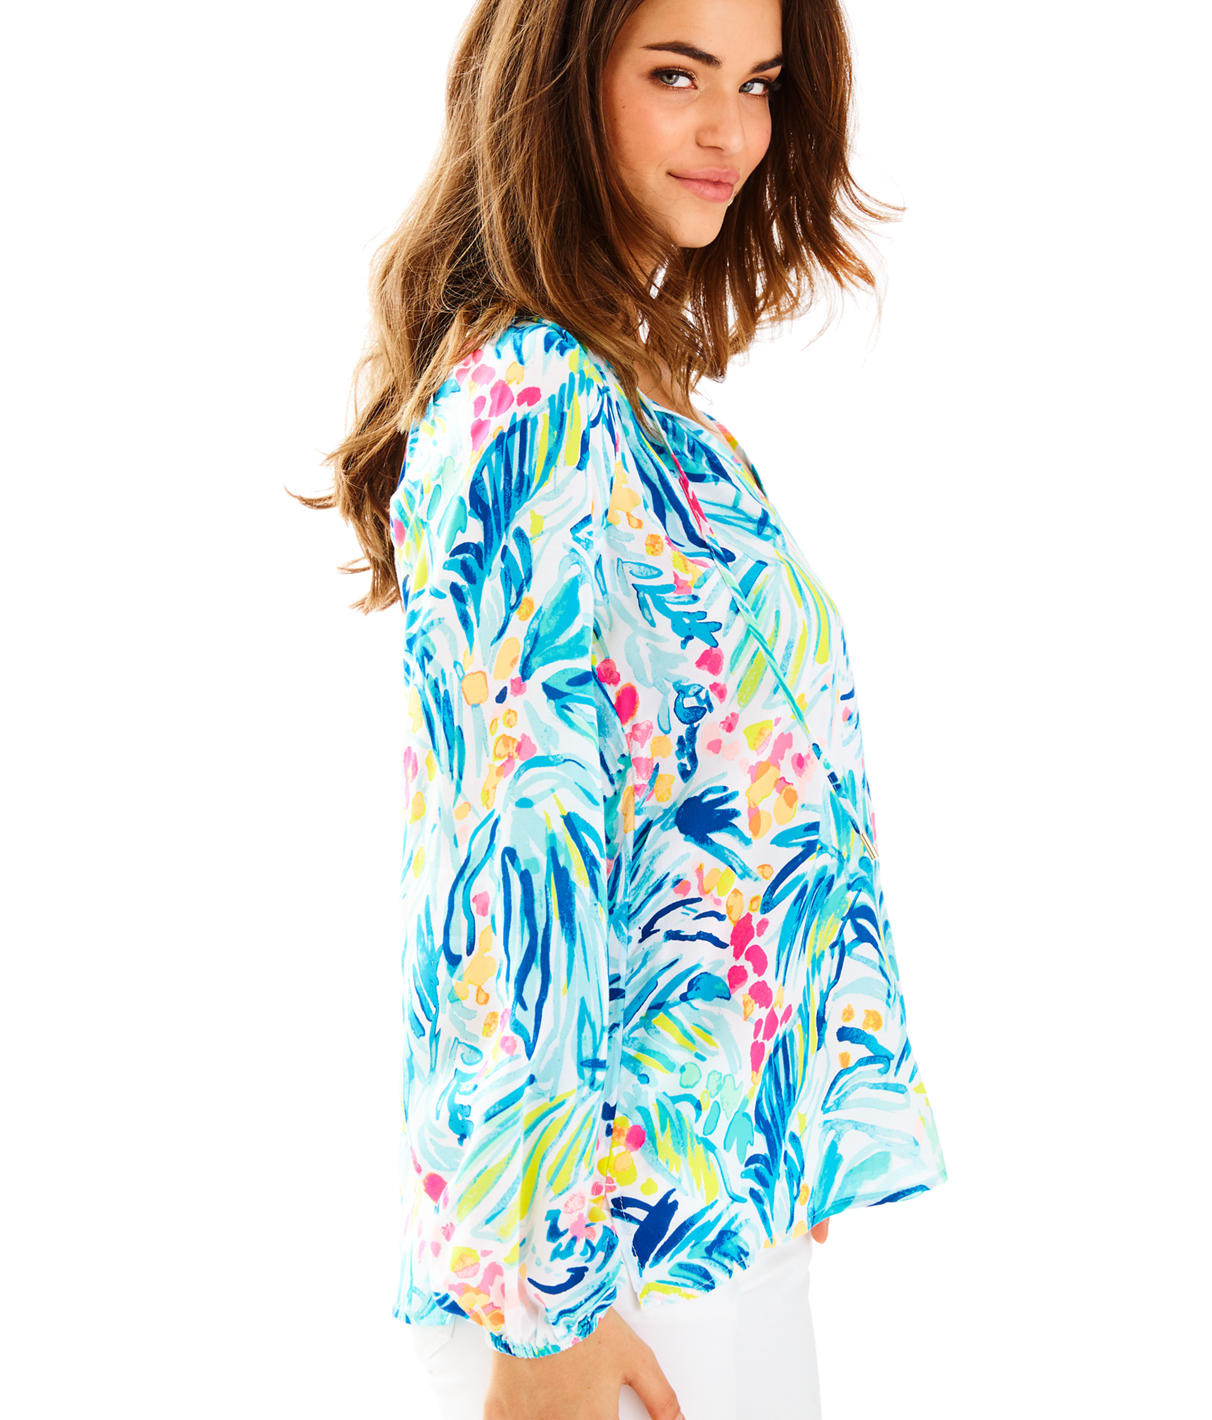 Lilly Pulitzer Lilly Pulitzer Womens Willa Tunic Top